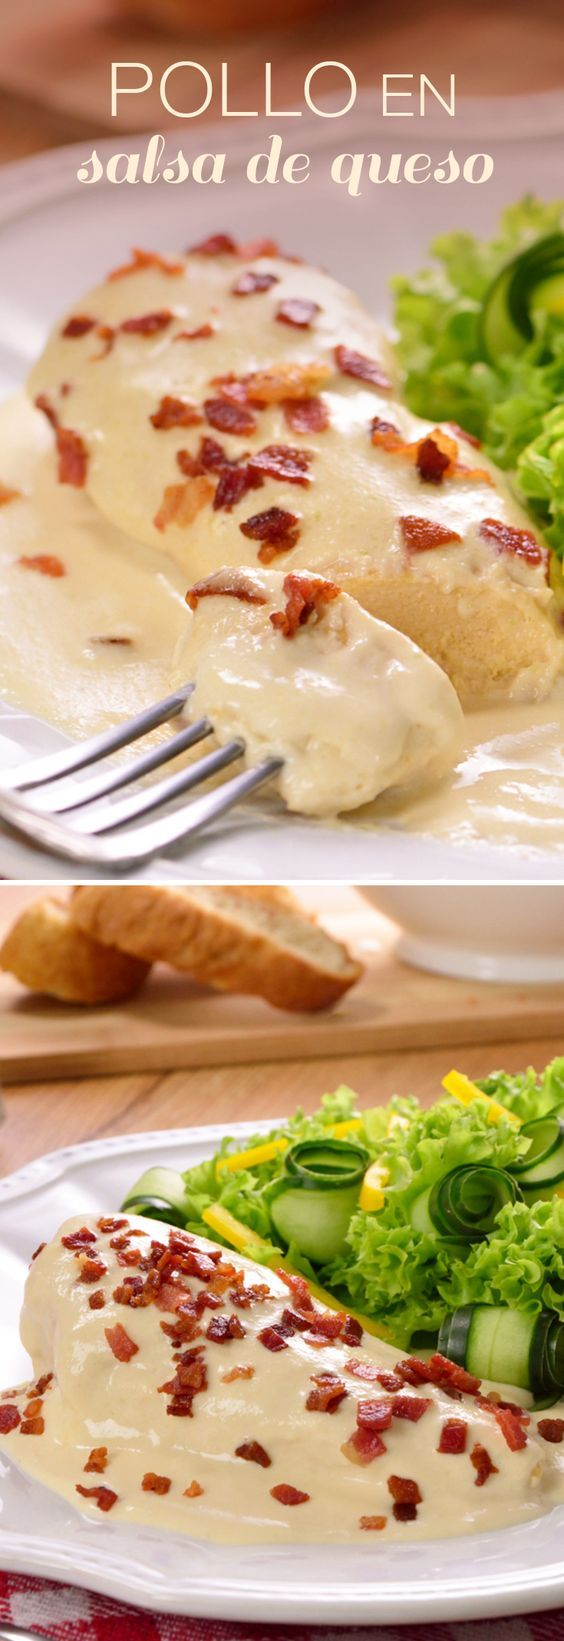 Pollo con salsa de queso Pinterest | https://pinterest.com/elcocinillas/